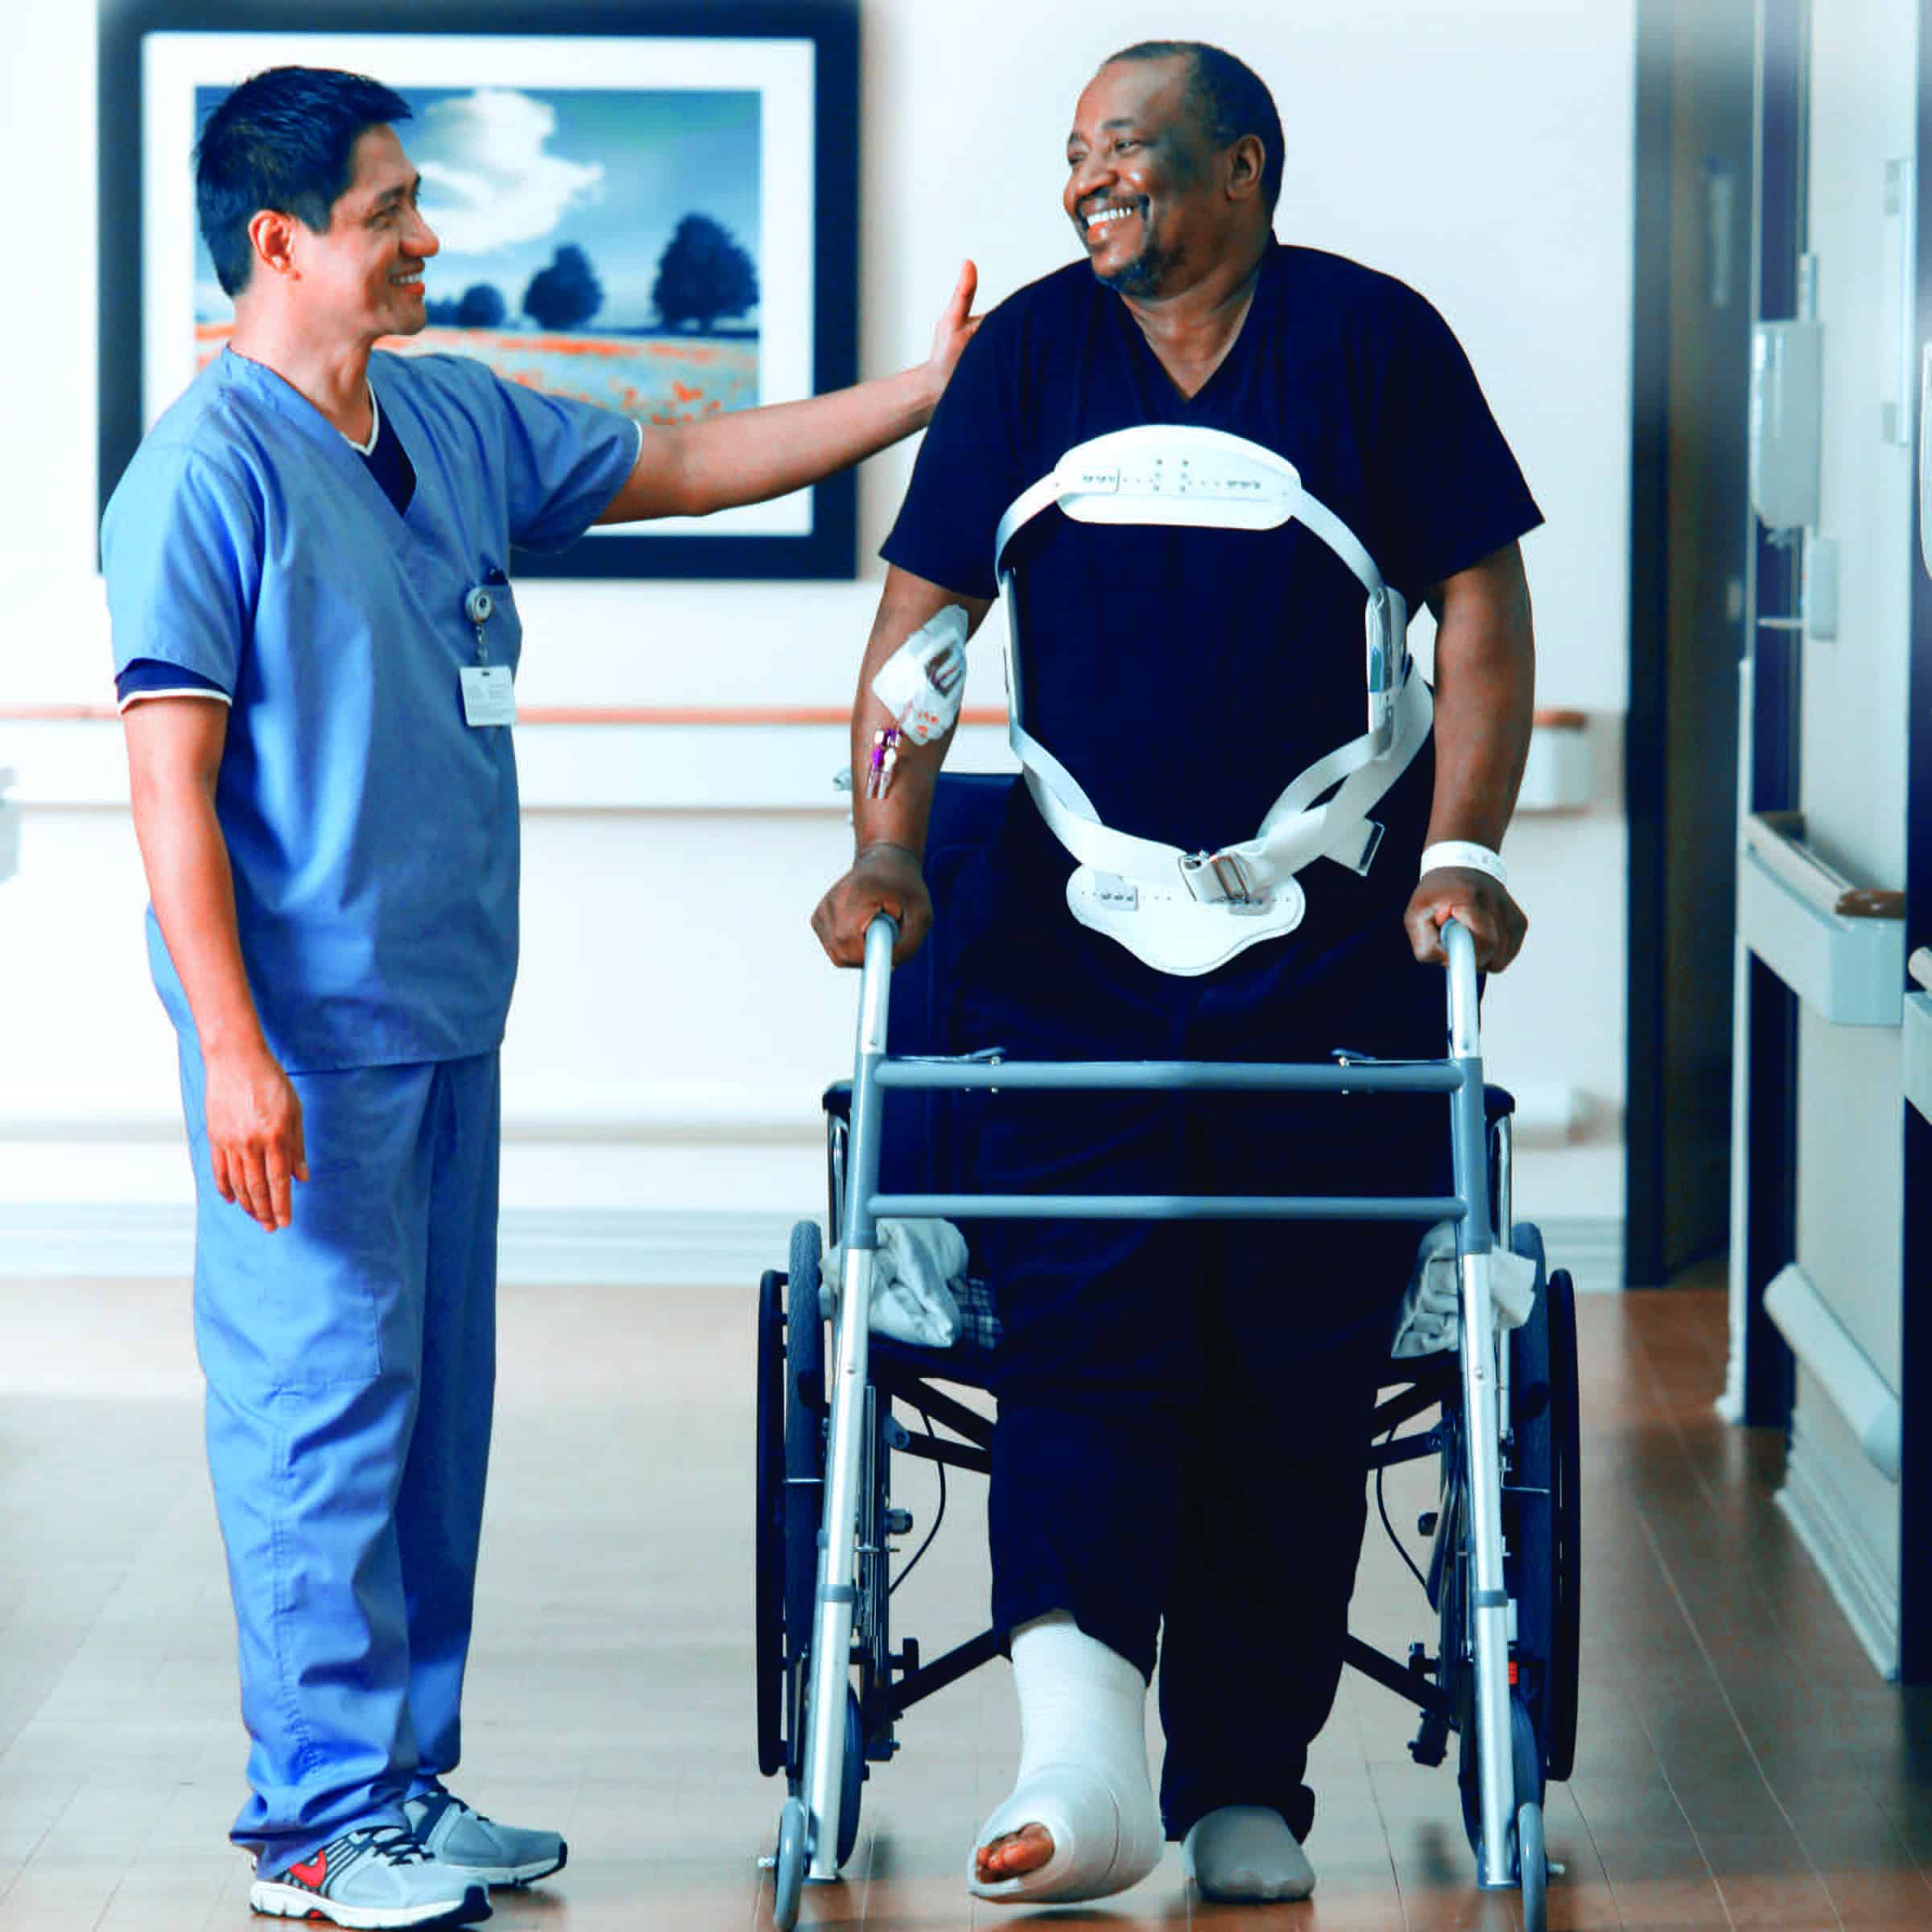 Regional_One_Health_Rehabilitation_Hospital_Patient_and_Family_Guide_p2